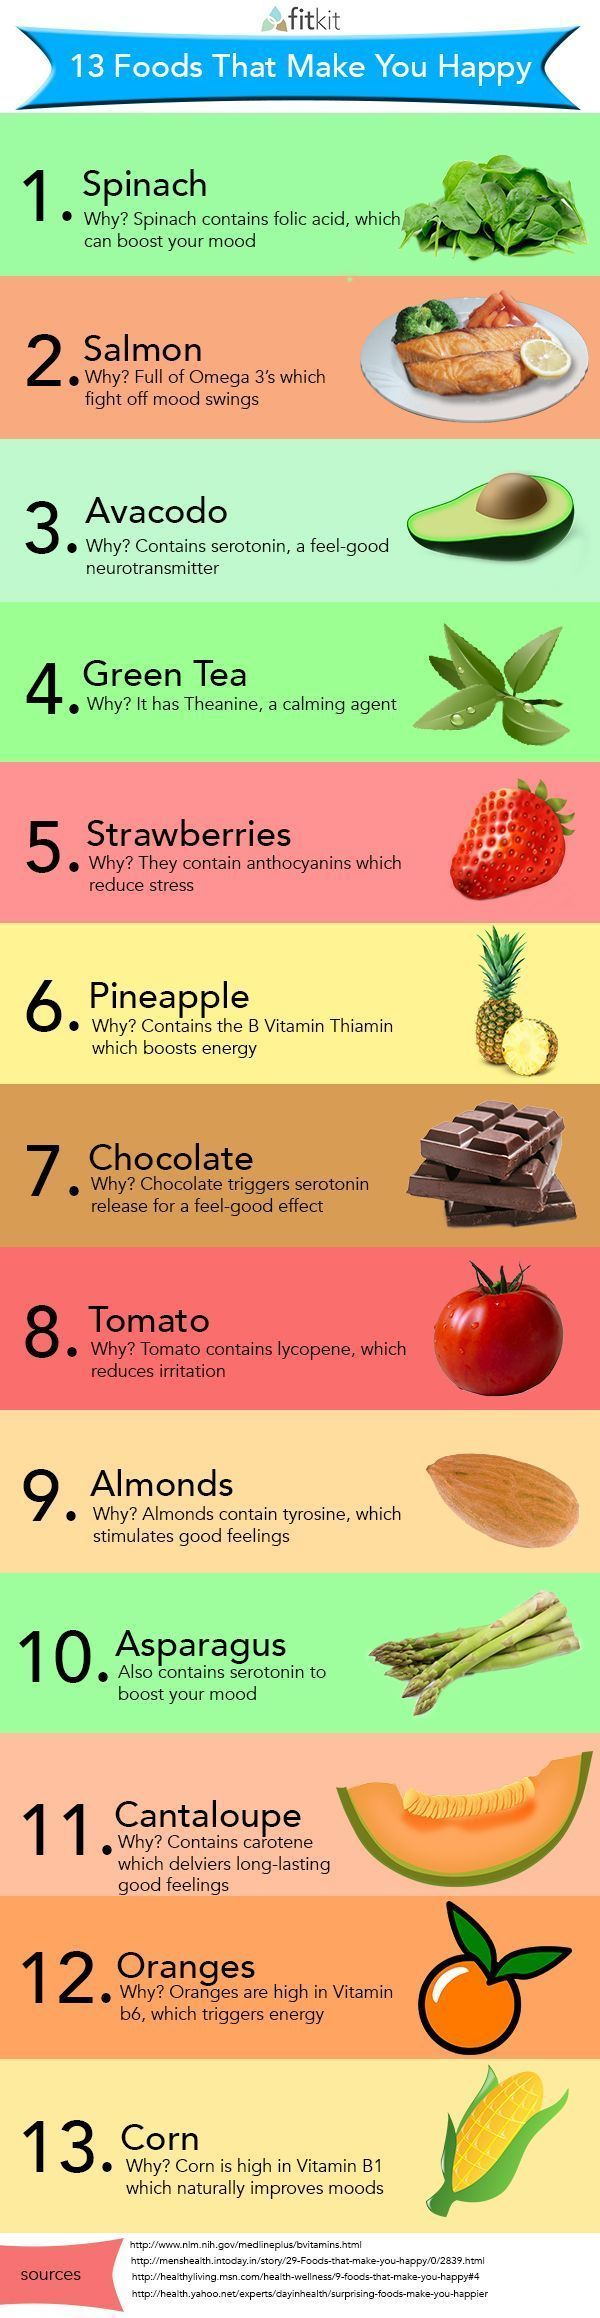 Food and good health - 13 Foods That Improve Your Mood Food Drinks Happy Life Happiness Positive Emotions Brain Mood Lifestyle Health Mental Health Healthy Living Healthy